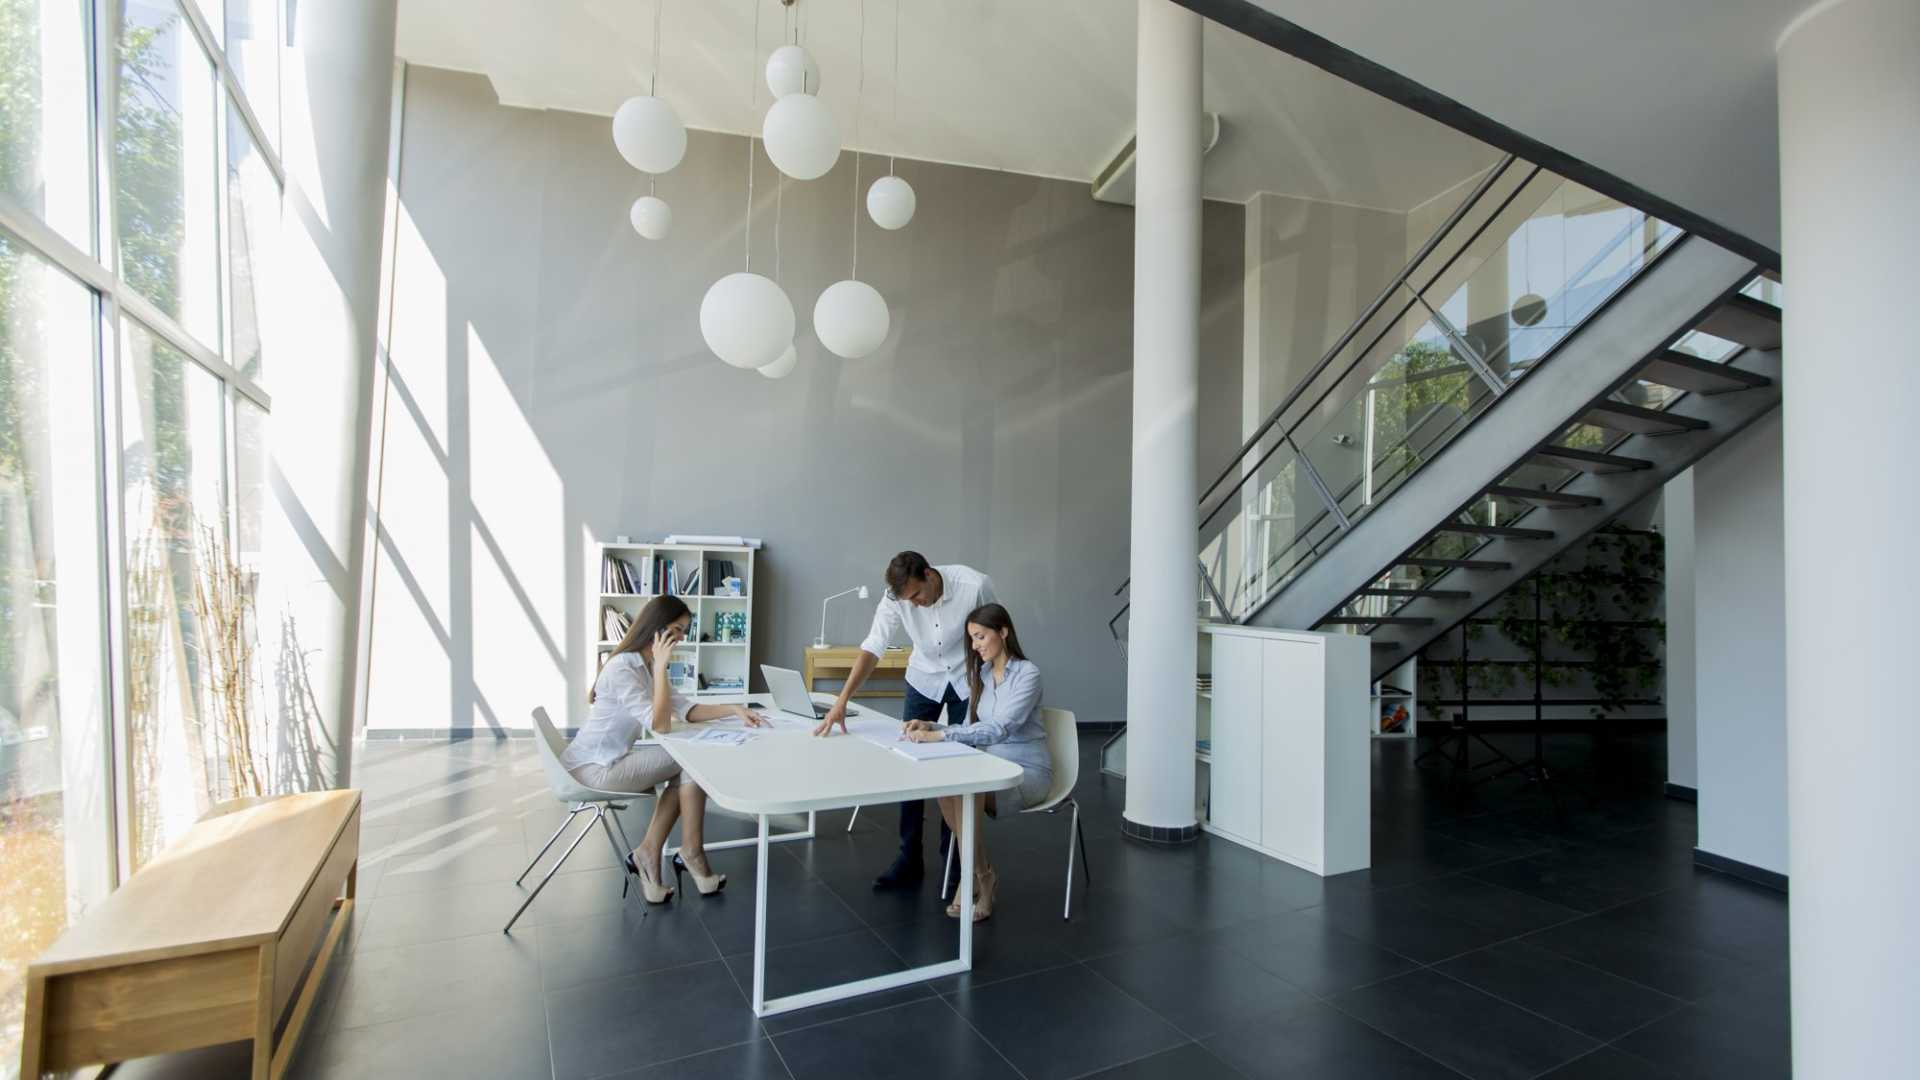 Culture Beyond the Cube: Aligning Your Office Design with Your Purpose